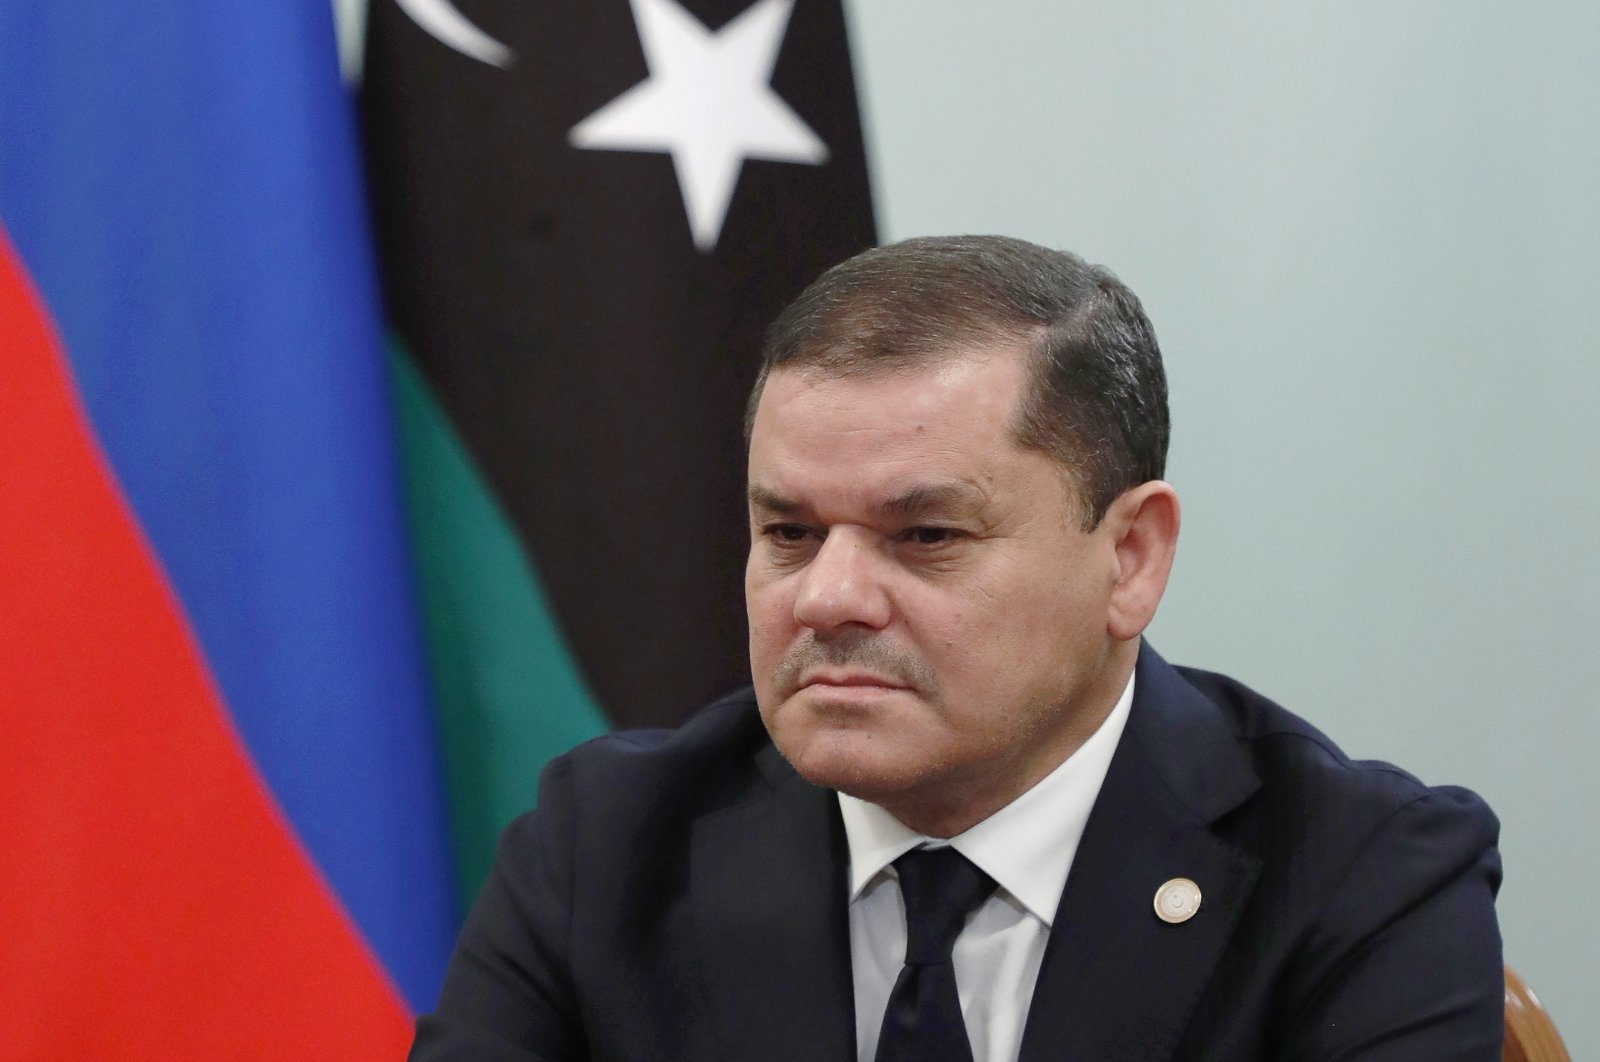 The Prime Minister of the Libyan Government of National Unity, Abdul Hamid Dbeibah during a meeting with Russia's Prime Minister Mikhail Mishustin at the House of the Russian Government, April 15, 2021. (TASS via Getty Images)